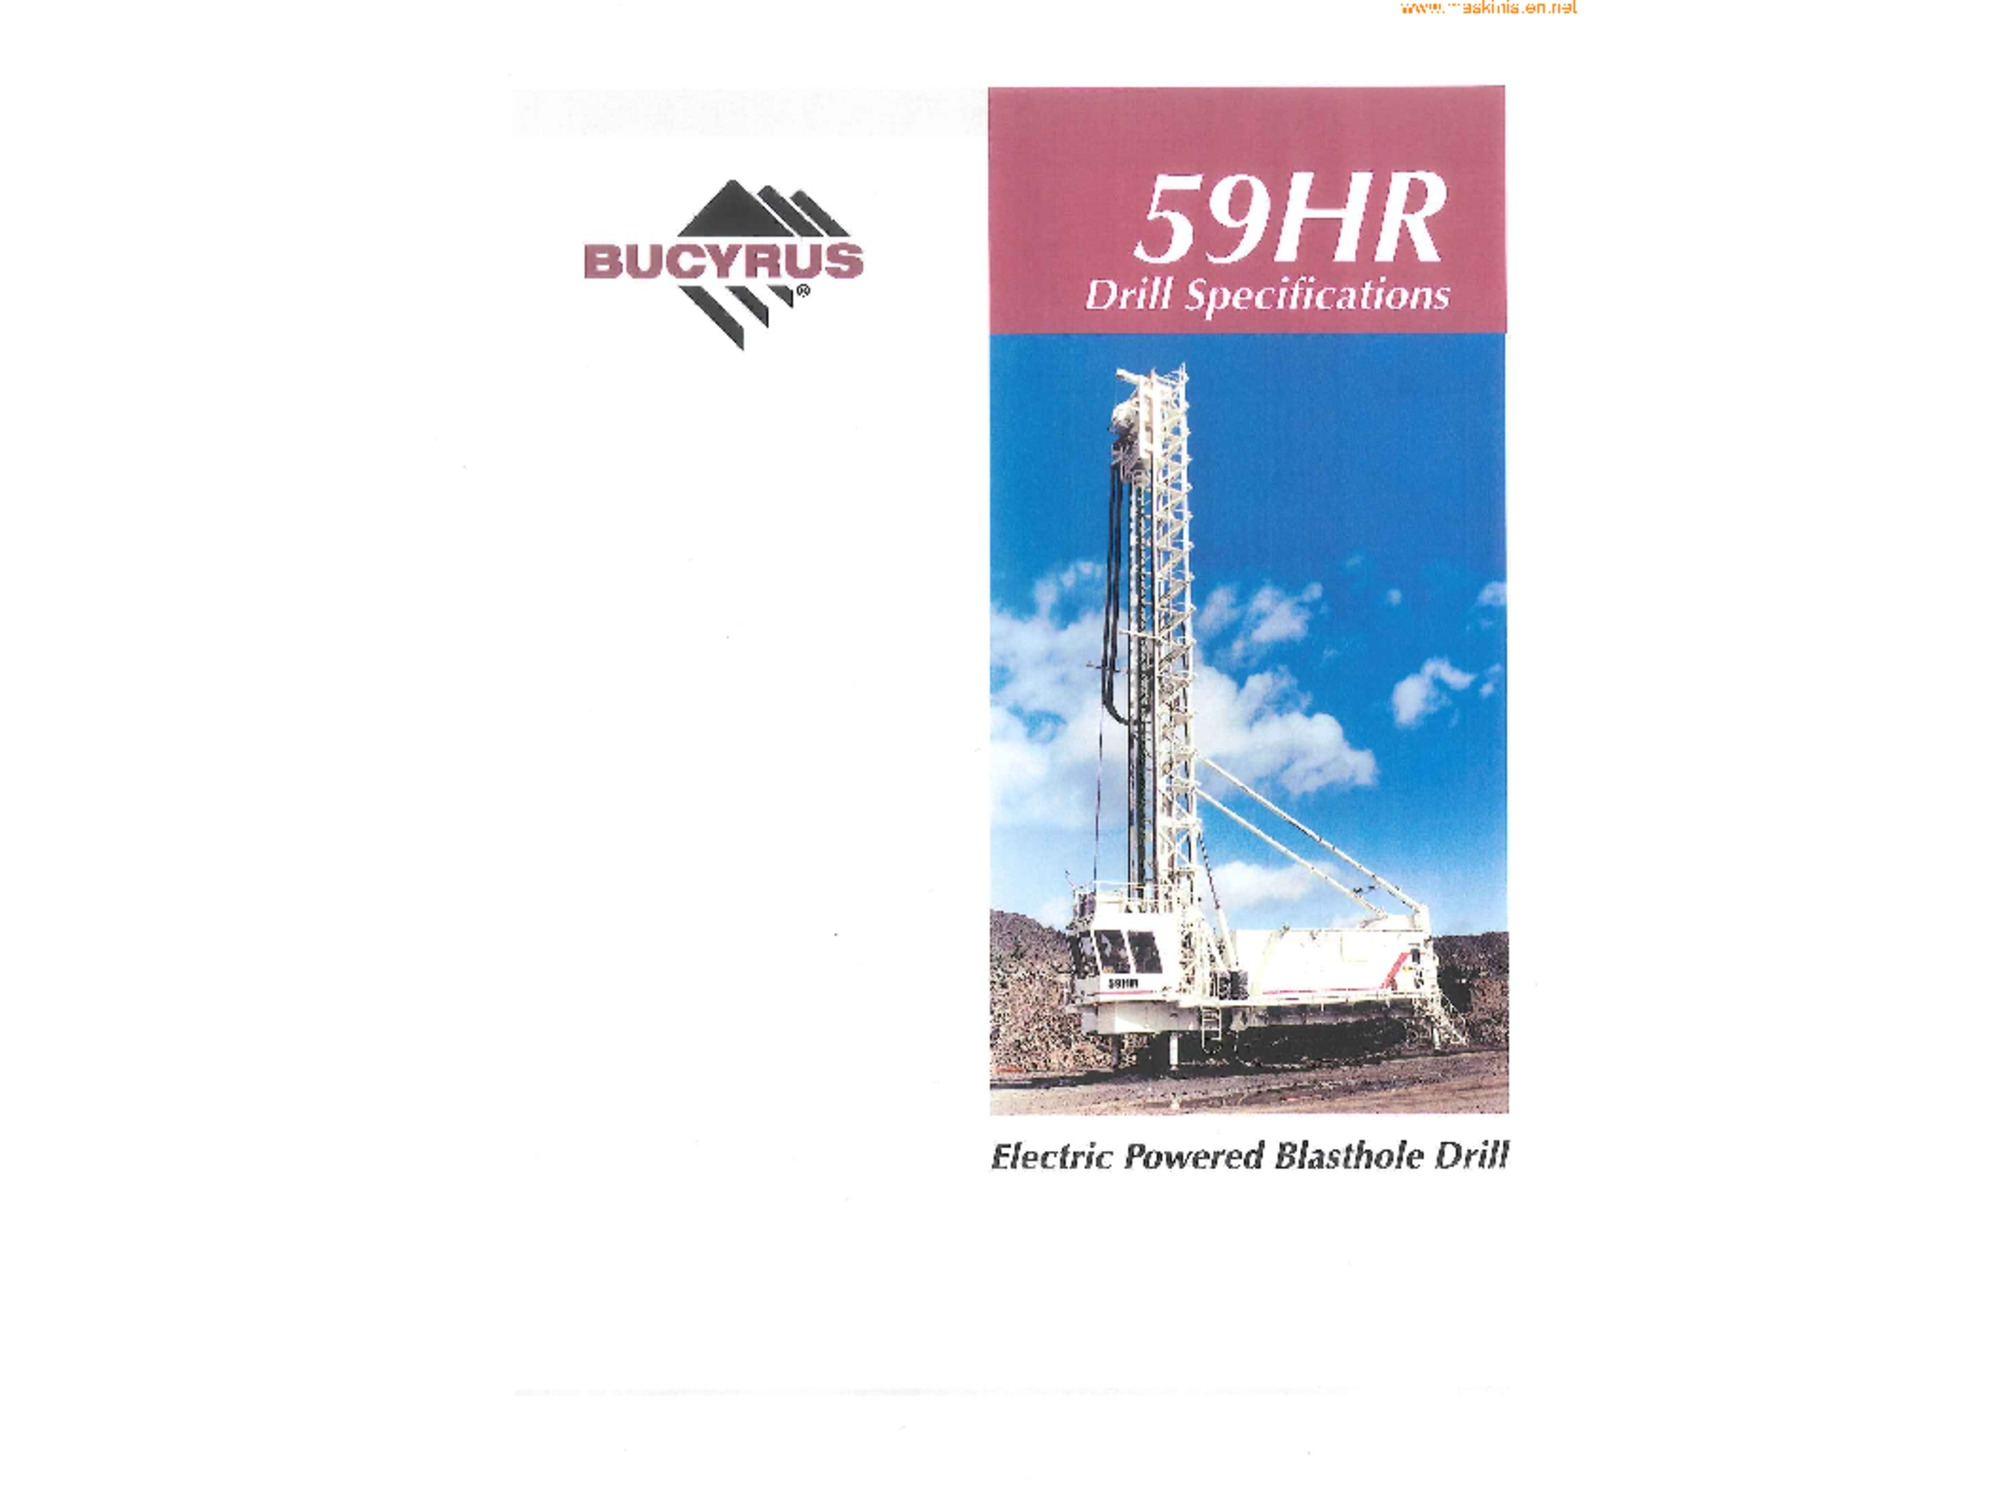 Bucyrus 59HR Drills specifikationer